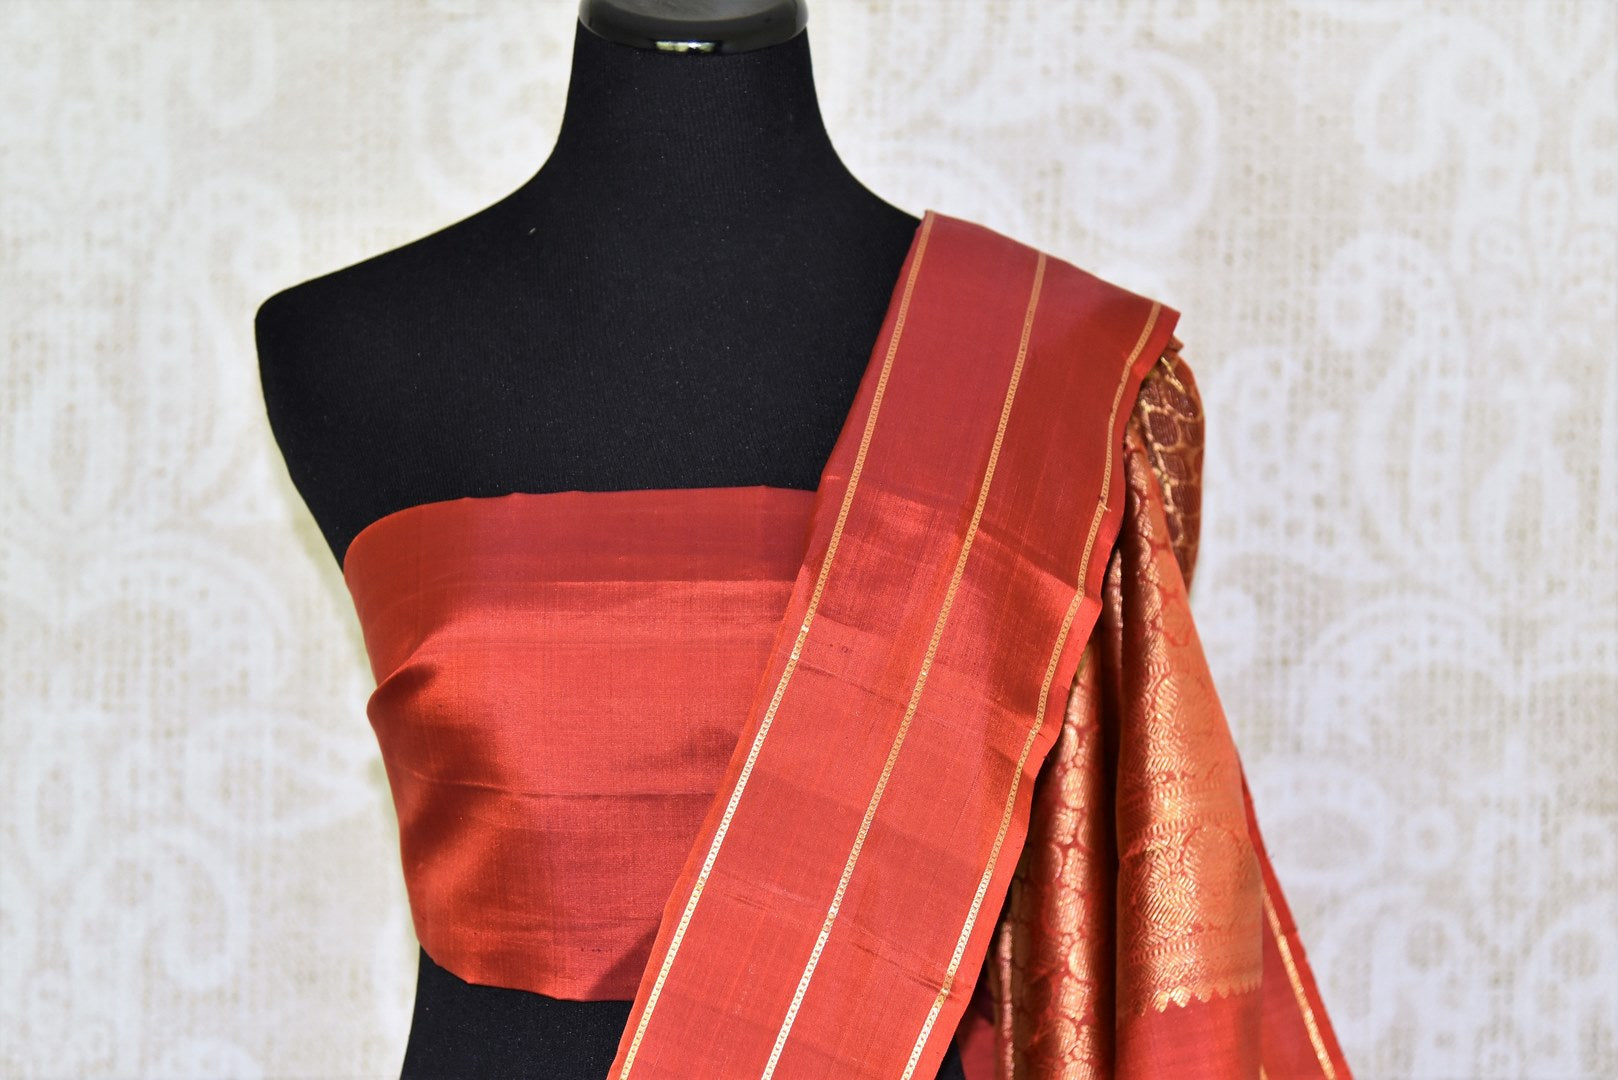 Shop purple Kanchipuram silk saree with zari buta online in USA. Adorn your style with a range of exquisite handwoven sarees from Pure Elegance Indian clothing store in USA. We have an exquisite range of Indian designer sarees, silk saris, Banarasi saris and many other varieties also available at our online store.-blouse pallu